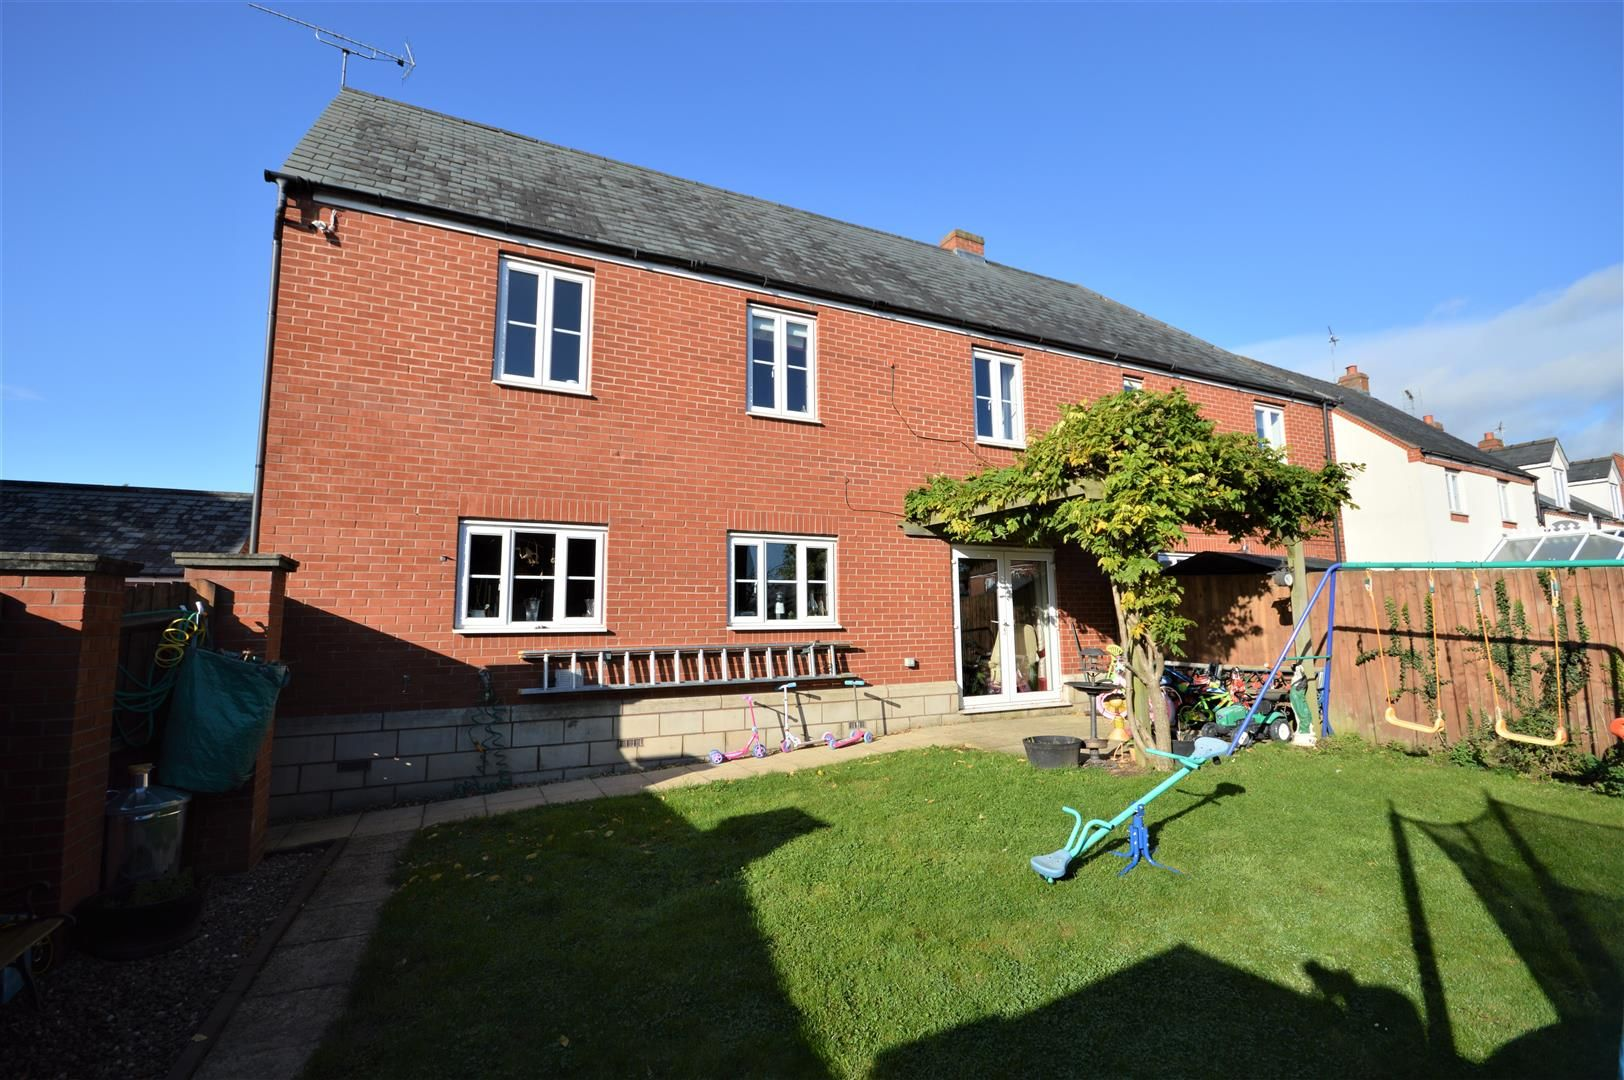 4 bed semi-detached for sale in Leominster 7